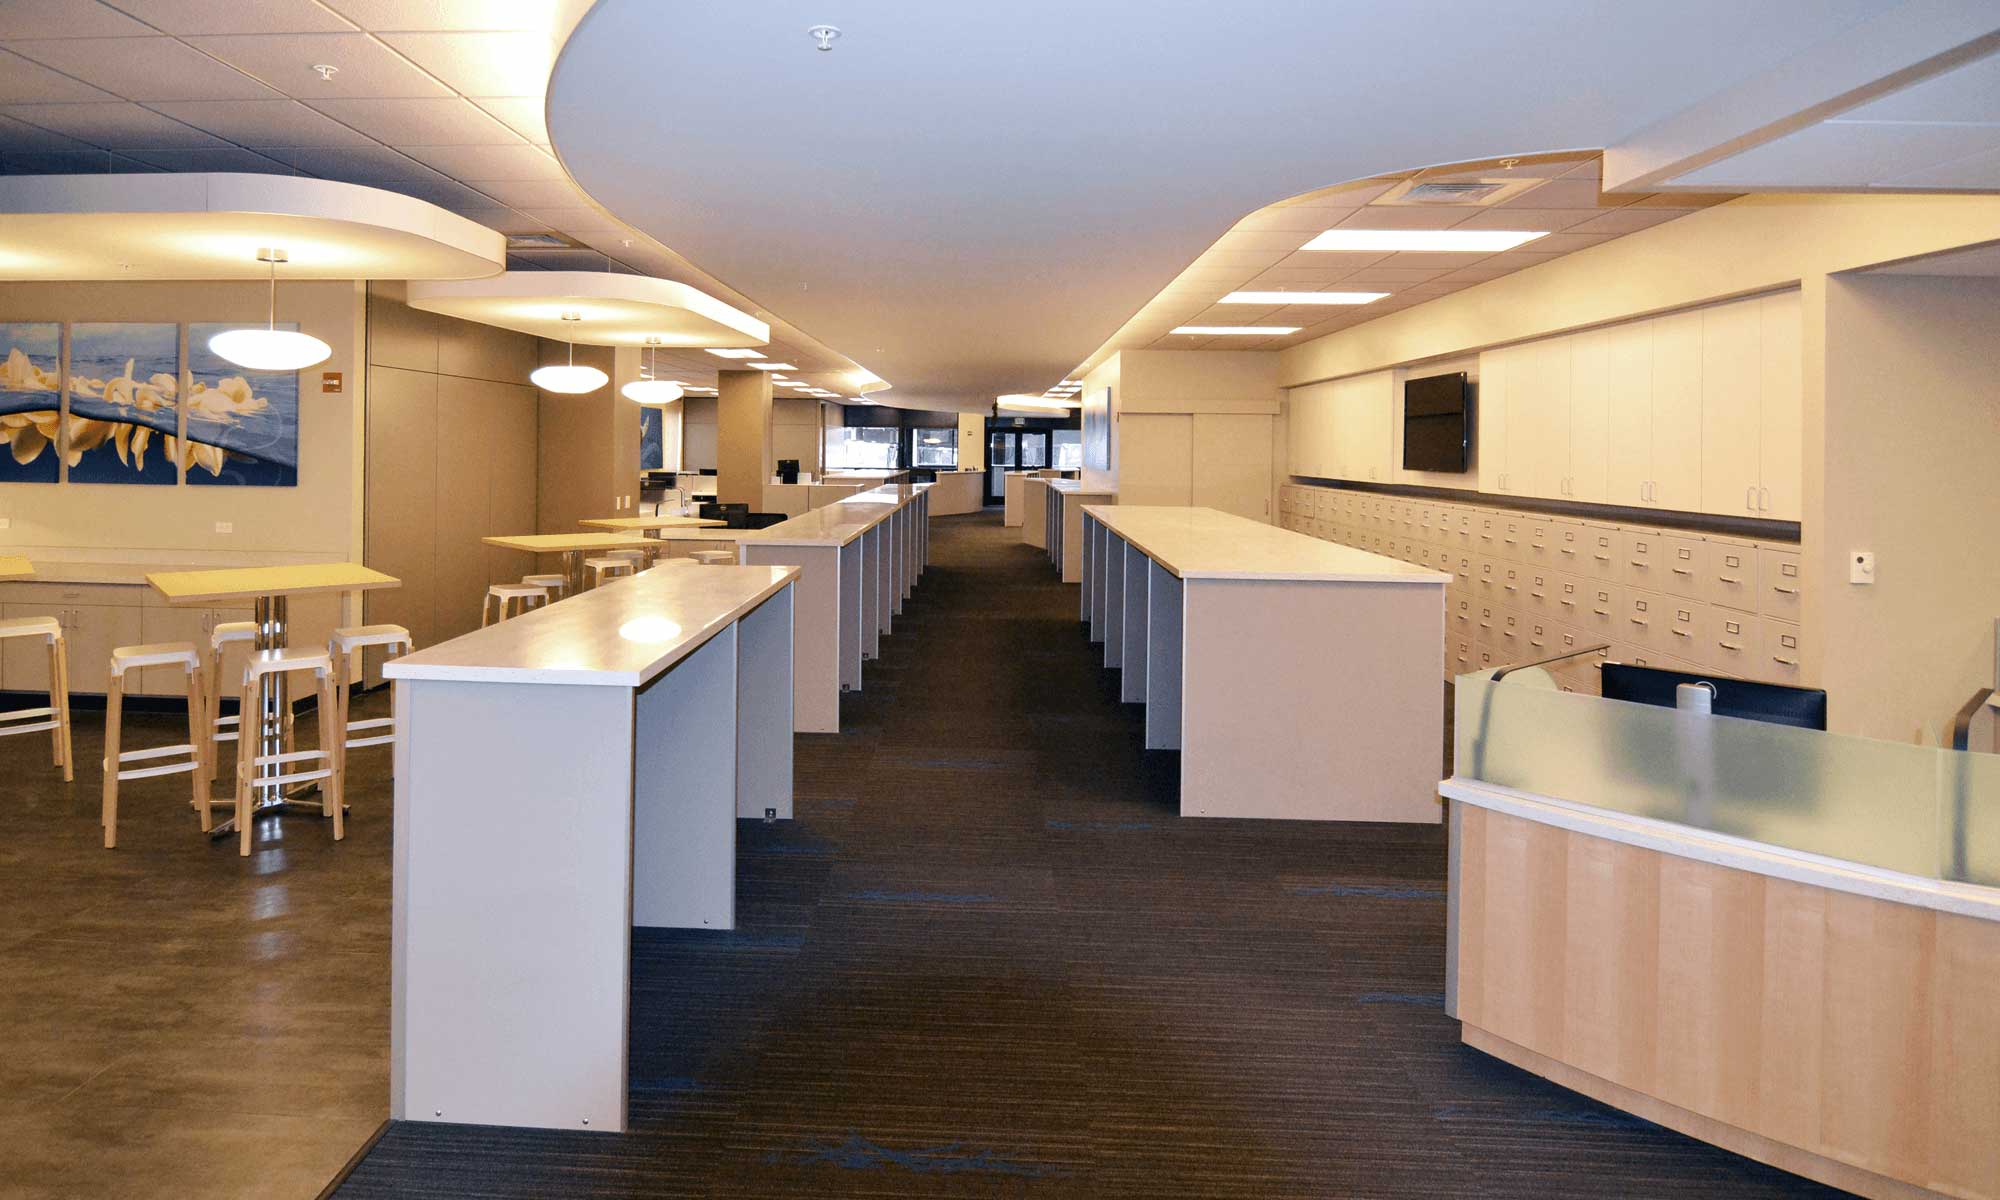 Hawaiian Airlines Crew Center Architecture Interior Design And Layout